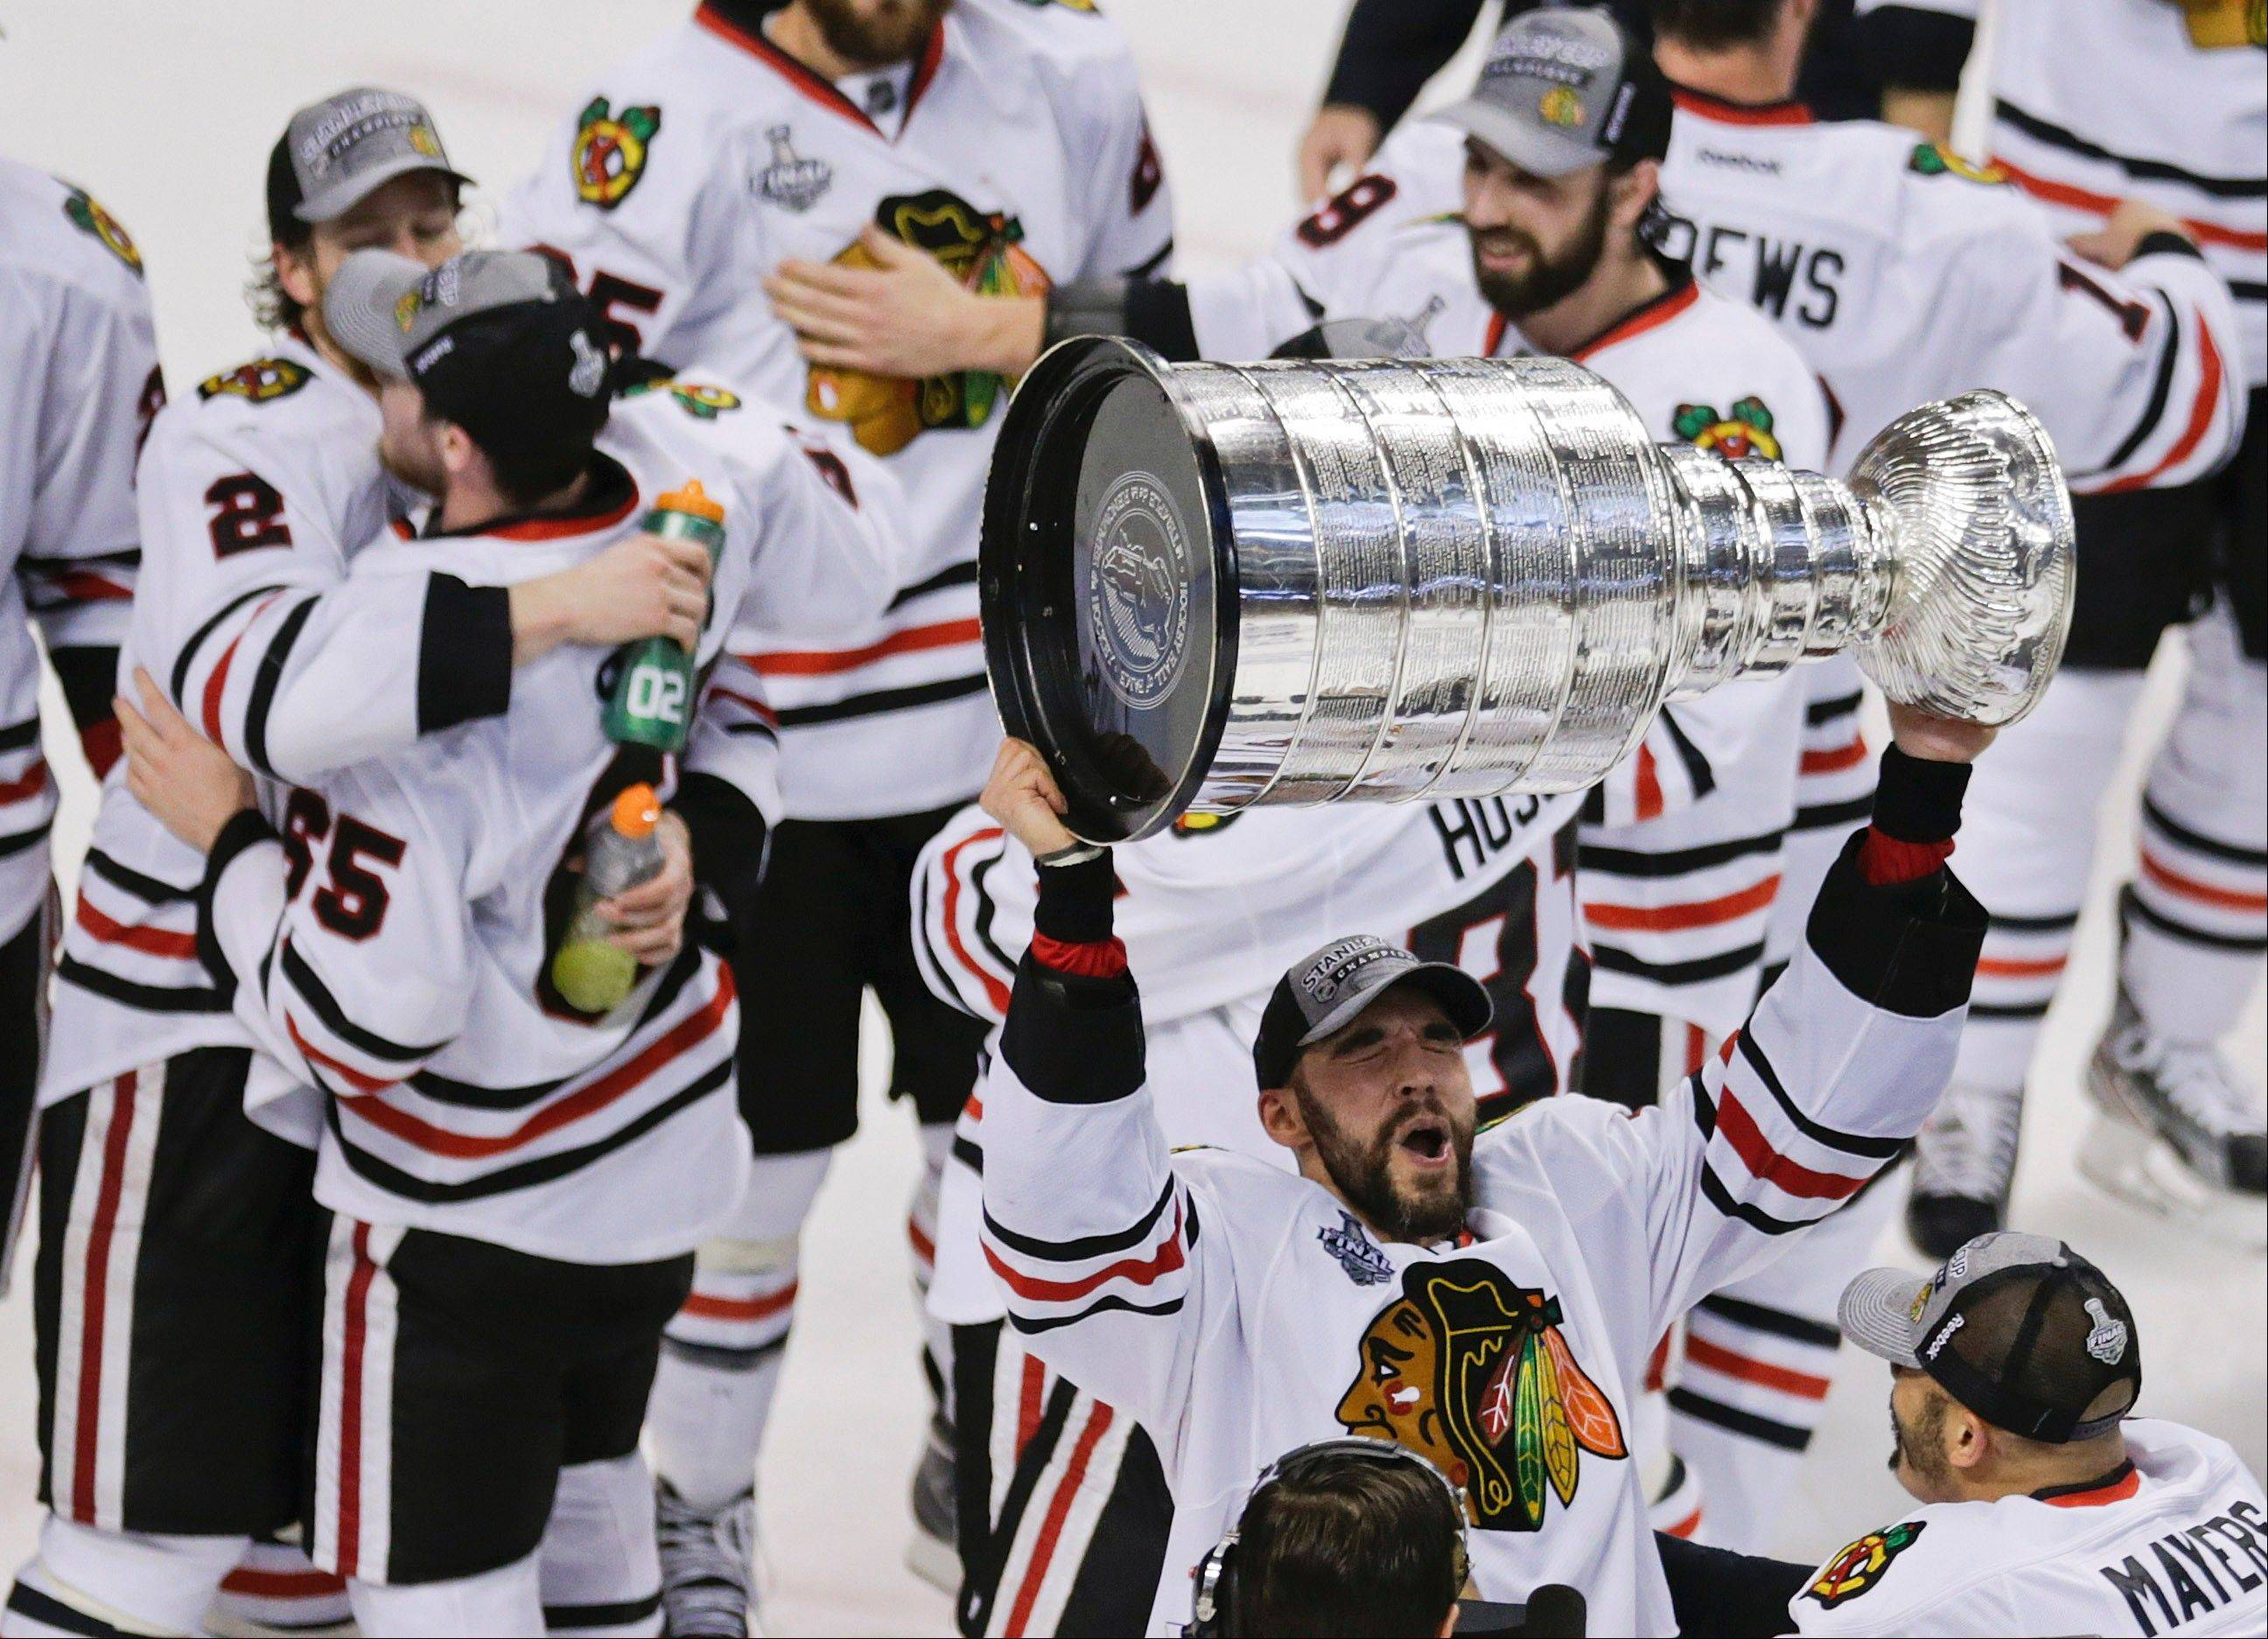 Michal Rozsival hoists the Stanley Cup after the Blackhawks defeated the Boston Bruins 3-2 in Game 6 of the Stanley Cup Final on Monday night.